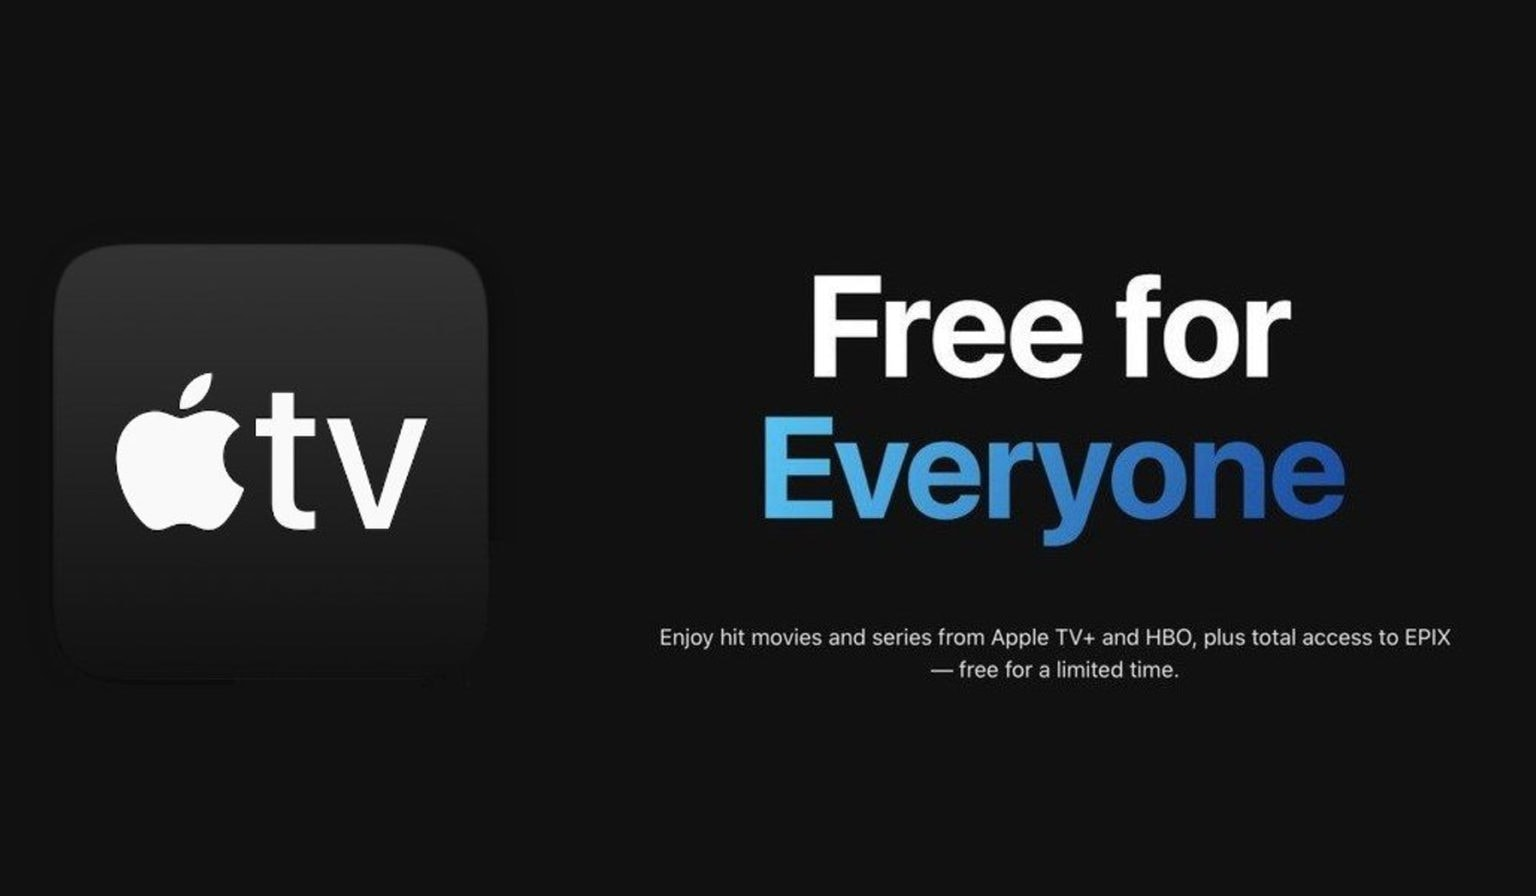 apple-tv-plus-free-for-everyone